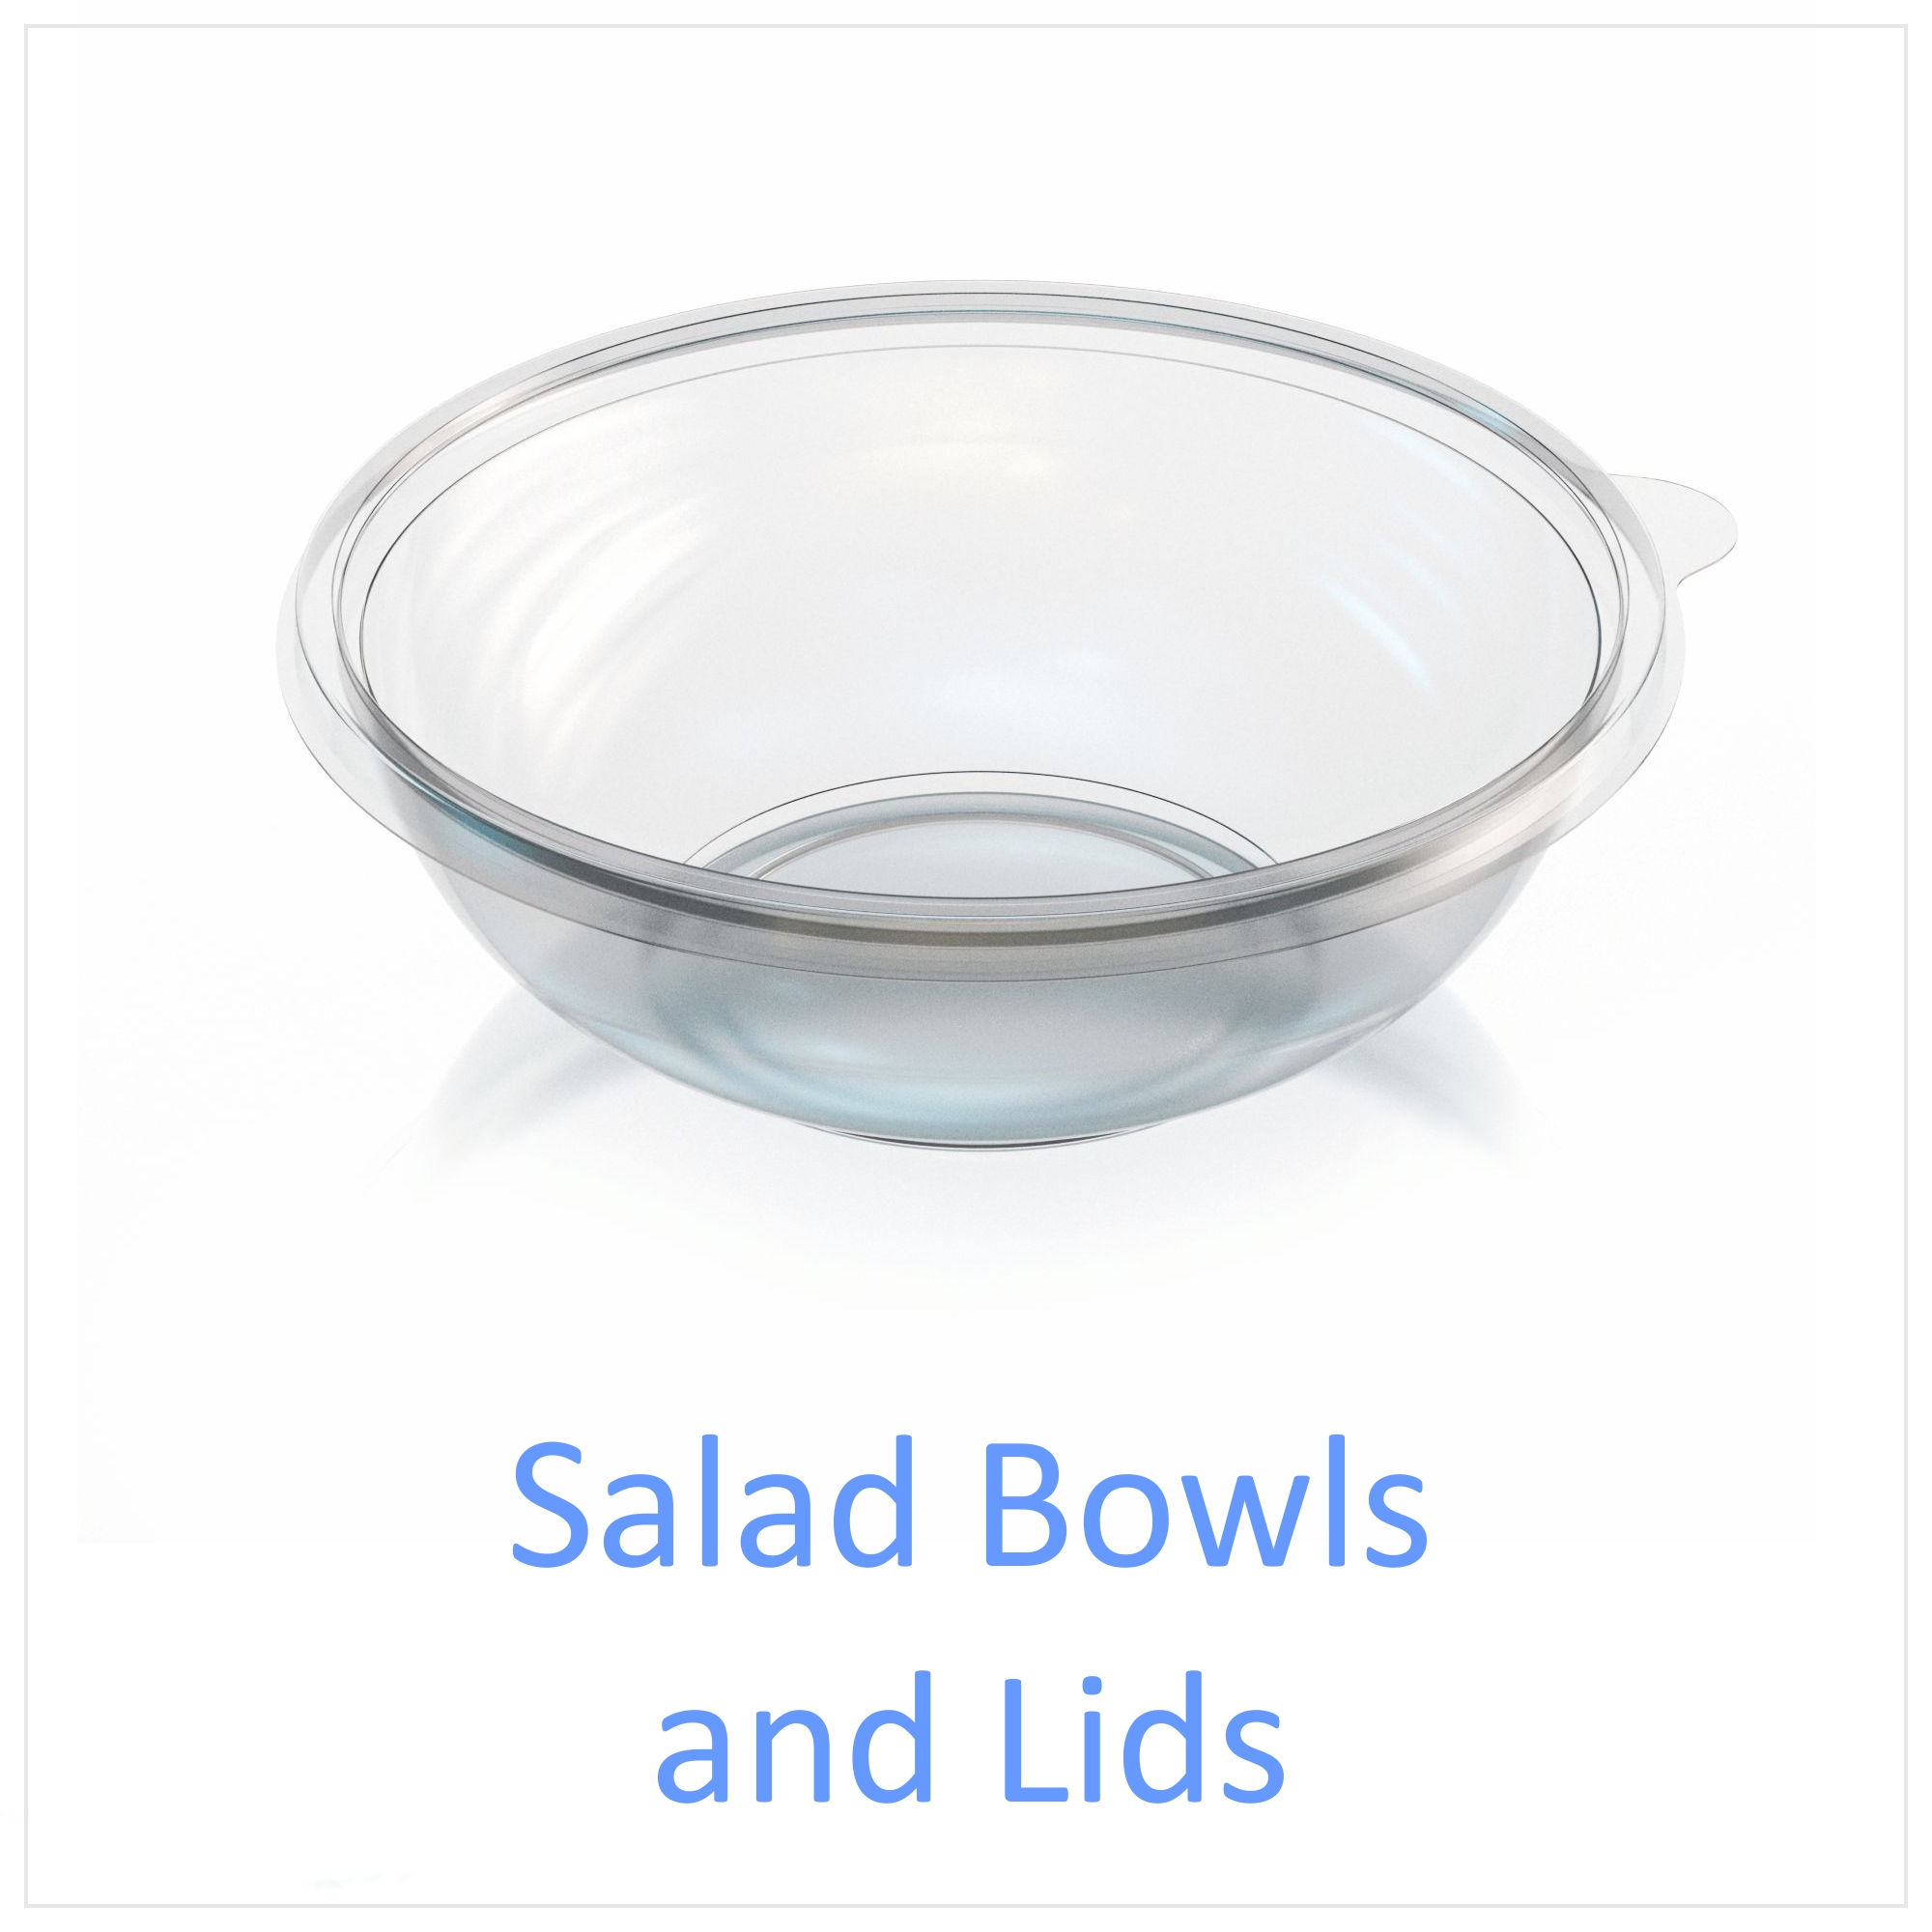 Salad Bowls and Lids